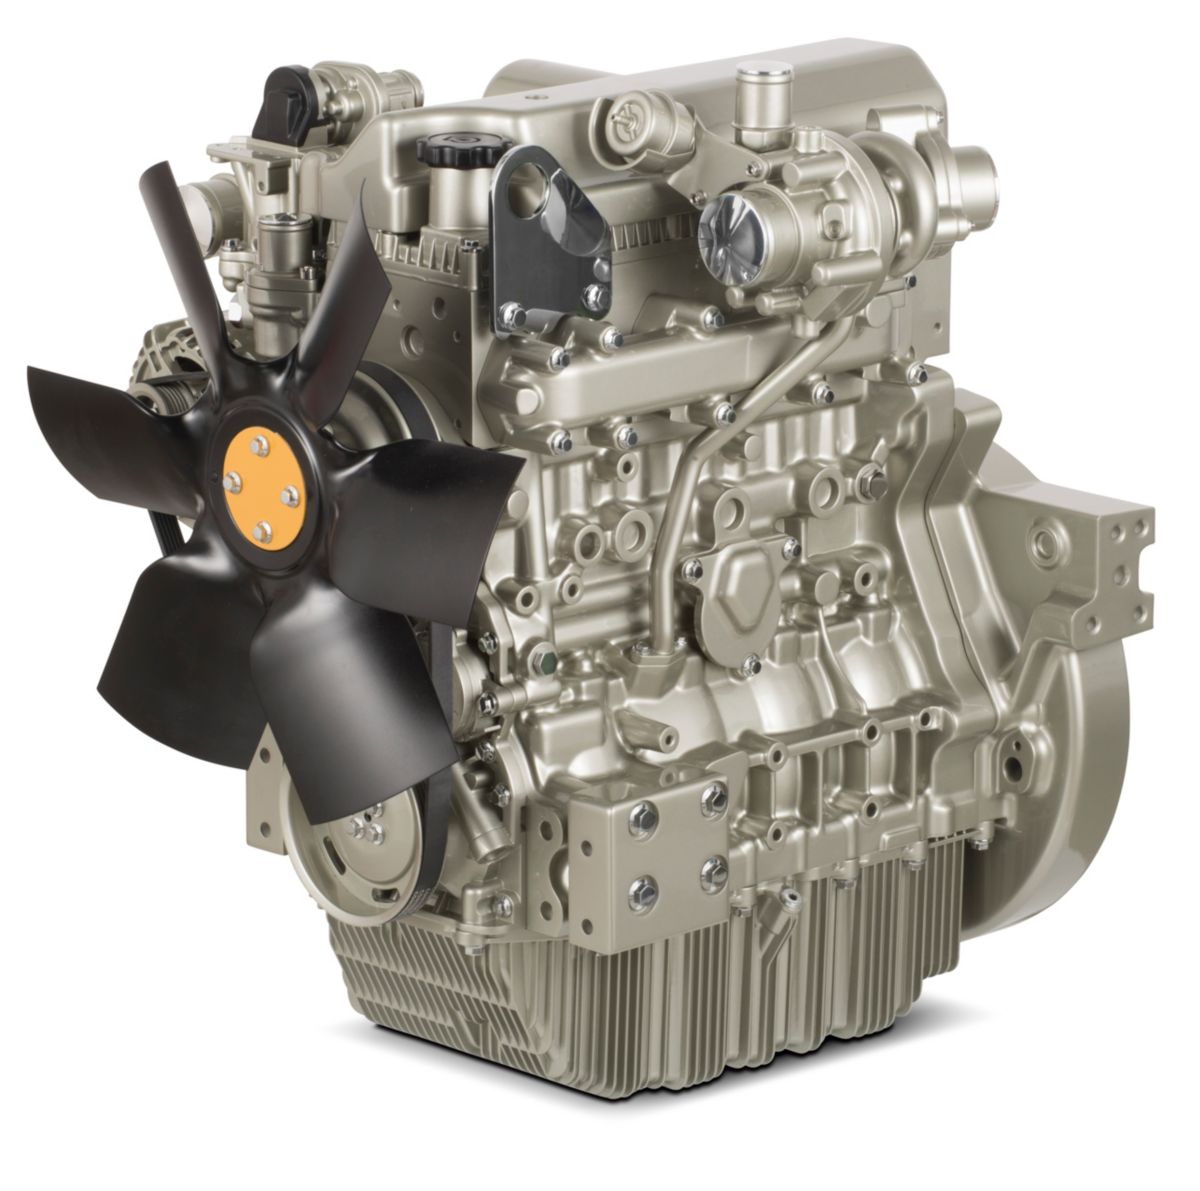 Perkins® Syncro 1.7 and 2.8 litre compact engines – tailor made for reliable power